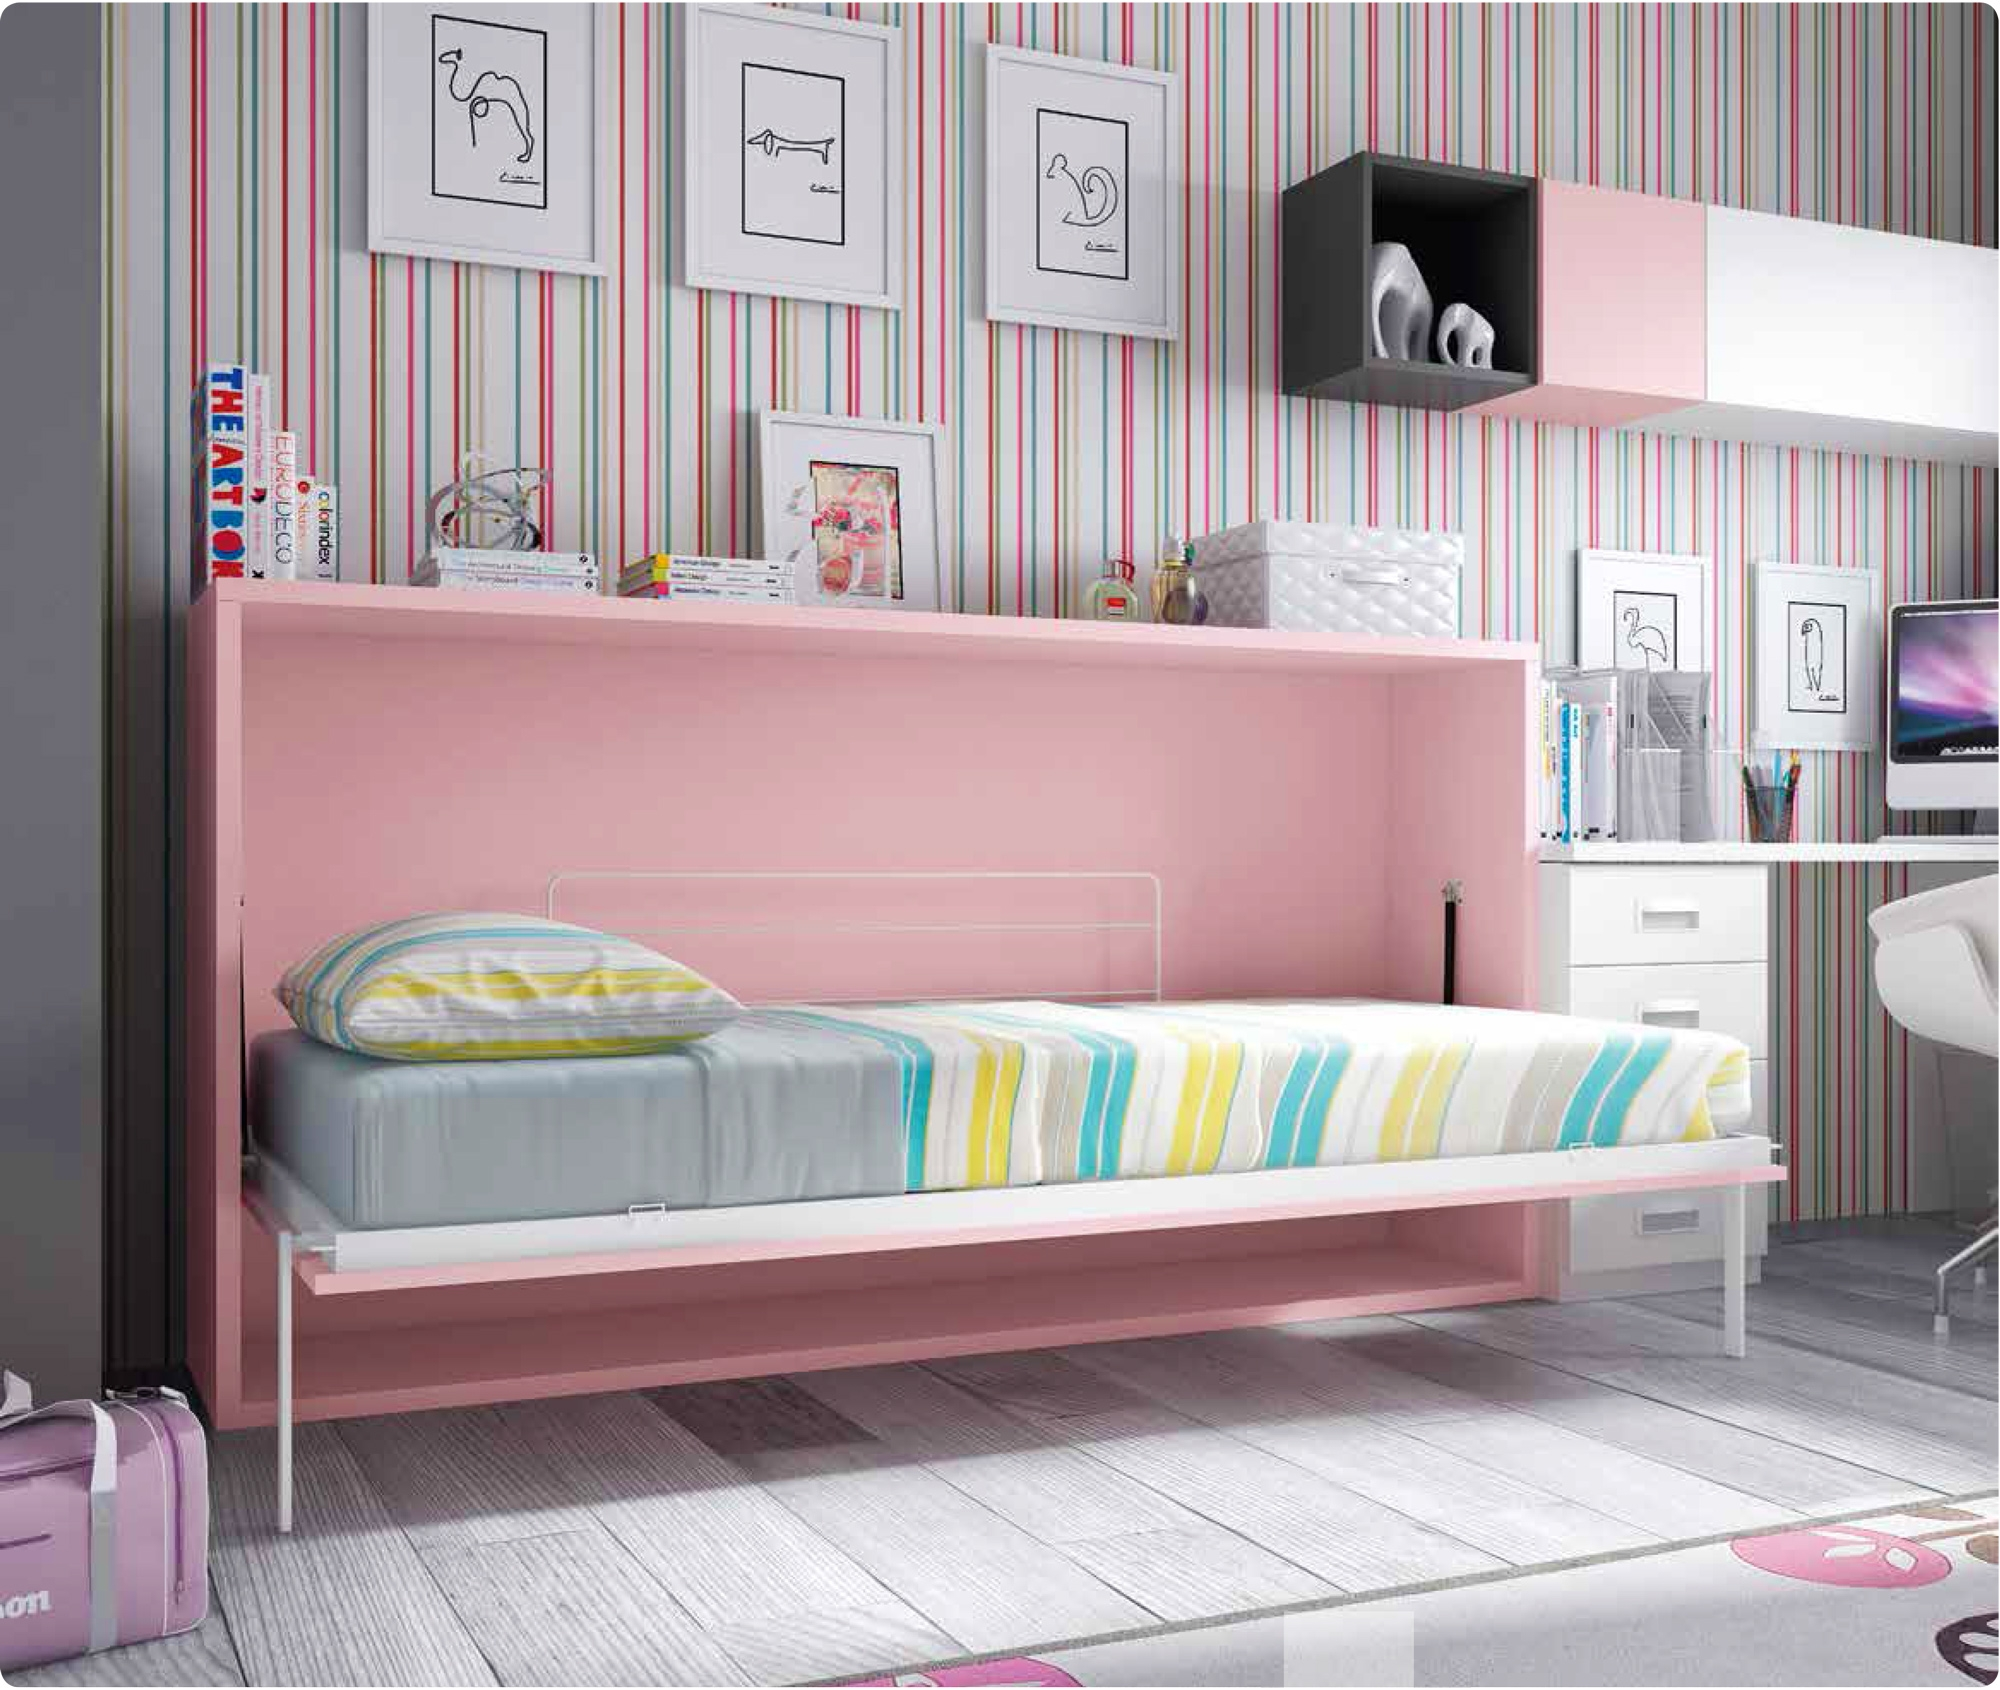 lit escamotable mural avec bureau personnaliser. Black Bedroom Furniture Sets. Home Design Ideas